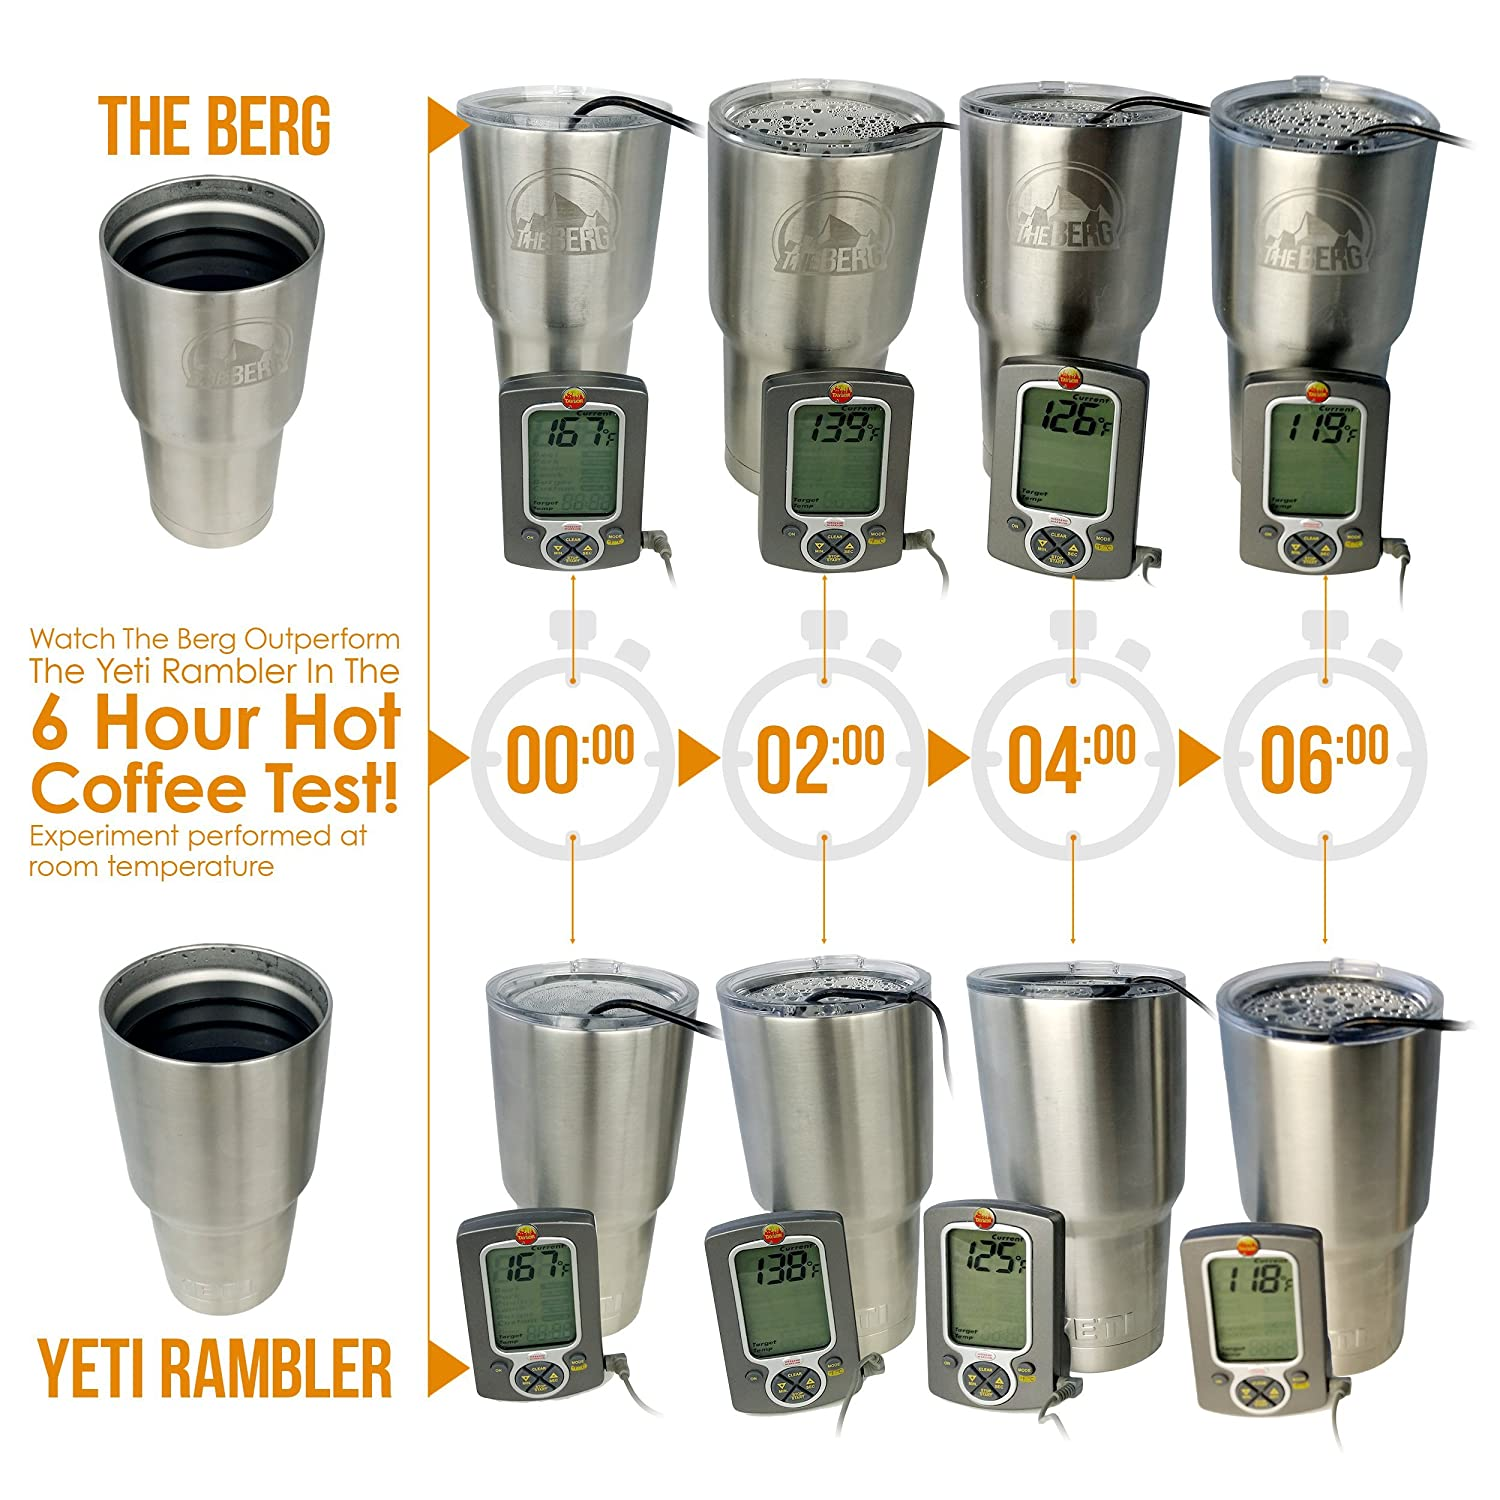 Berg Furniture Sold In Florida - Amazon com the berg stainless steel 30 oz tumbler includes bpa free slide lock lid upgrade two stainless steel reusable straws with cleaning brush